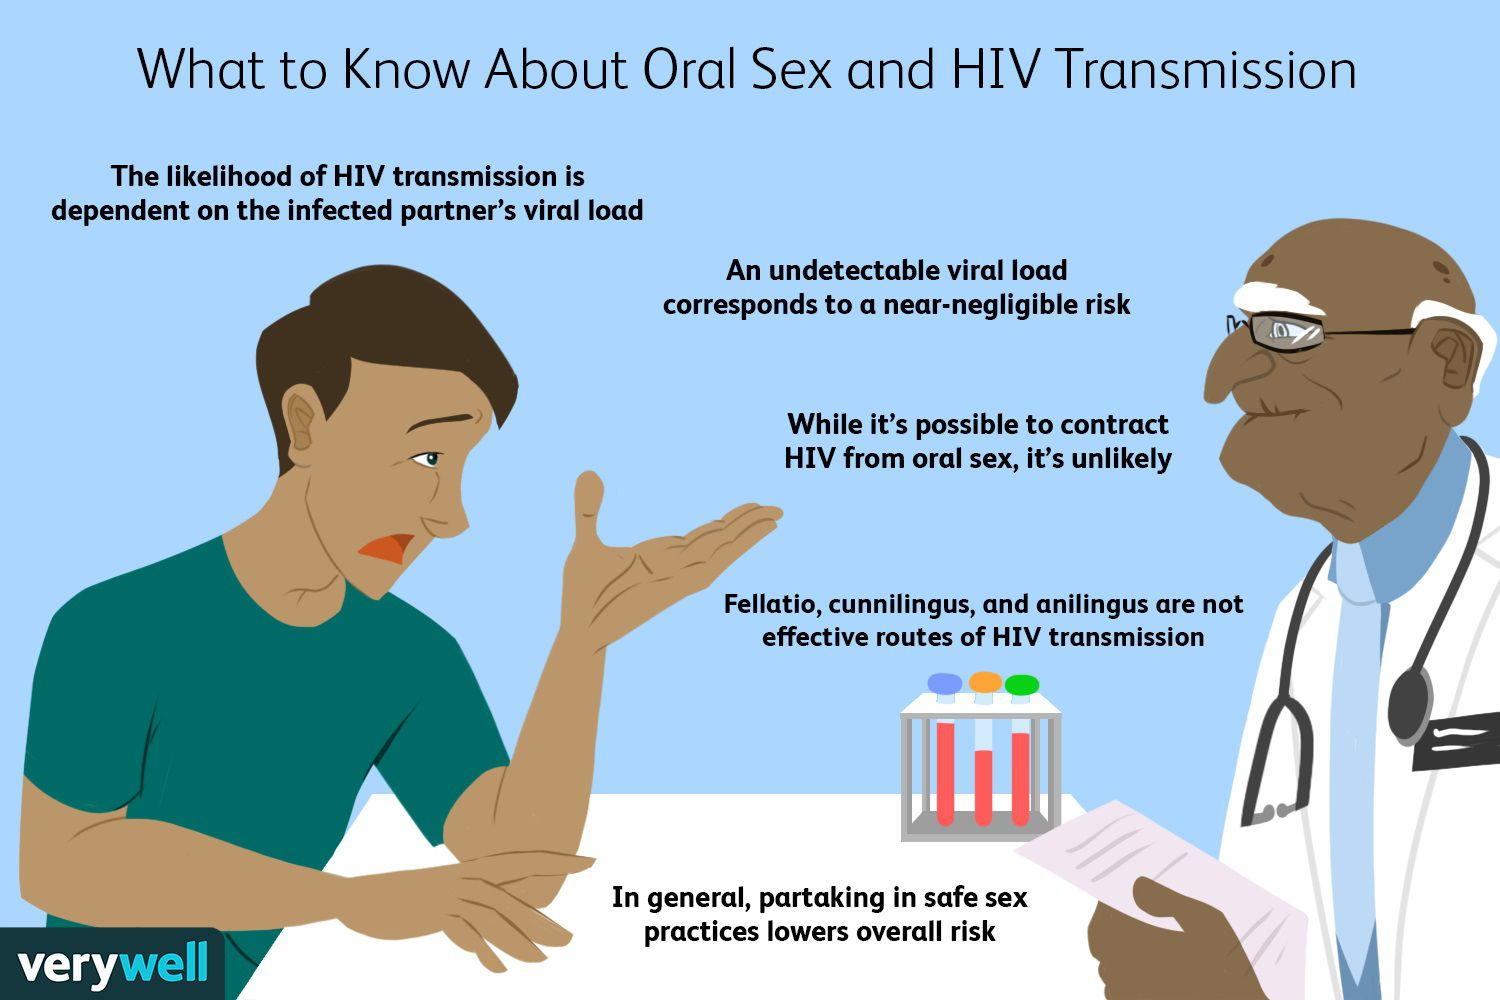 What to Know About Oral Sex and HIV Transmission